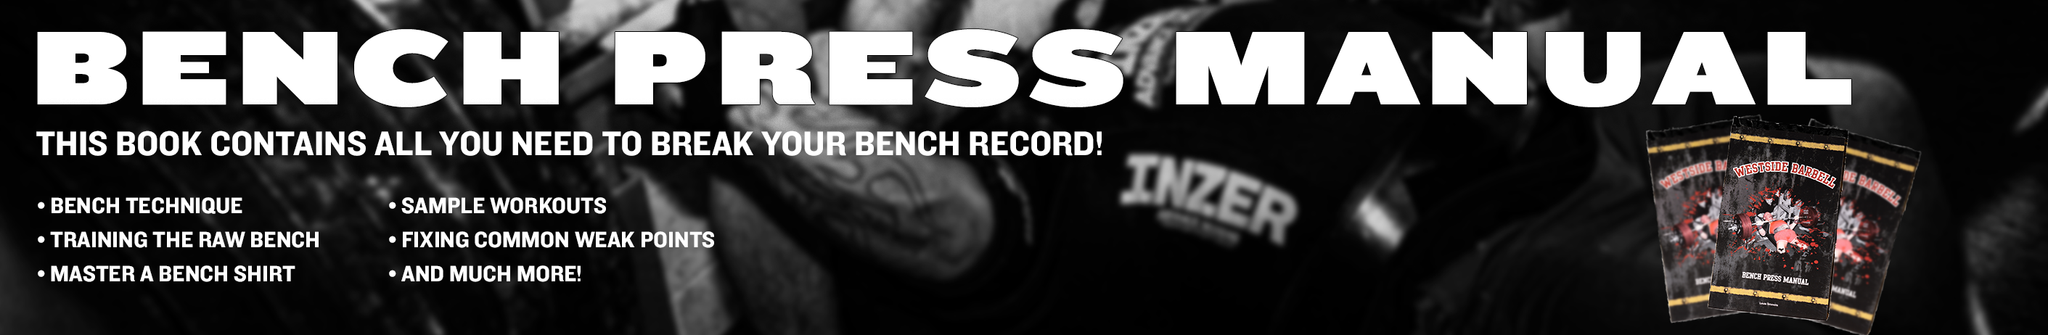 bench press manual